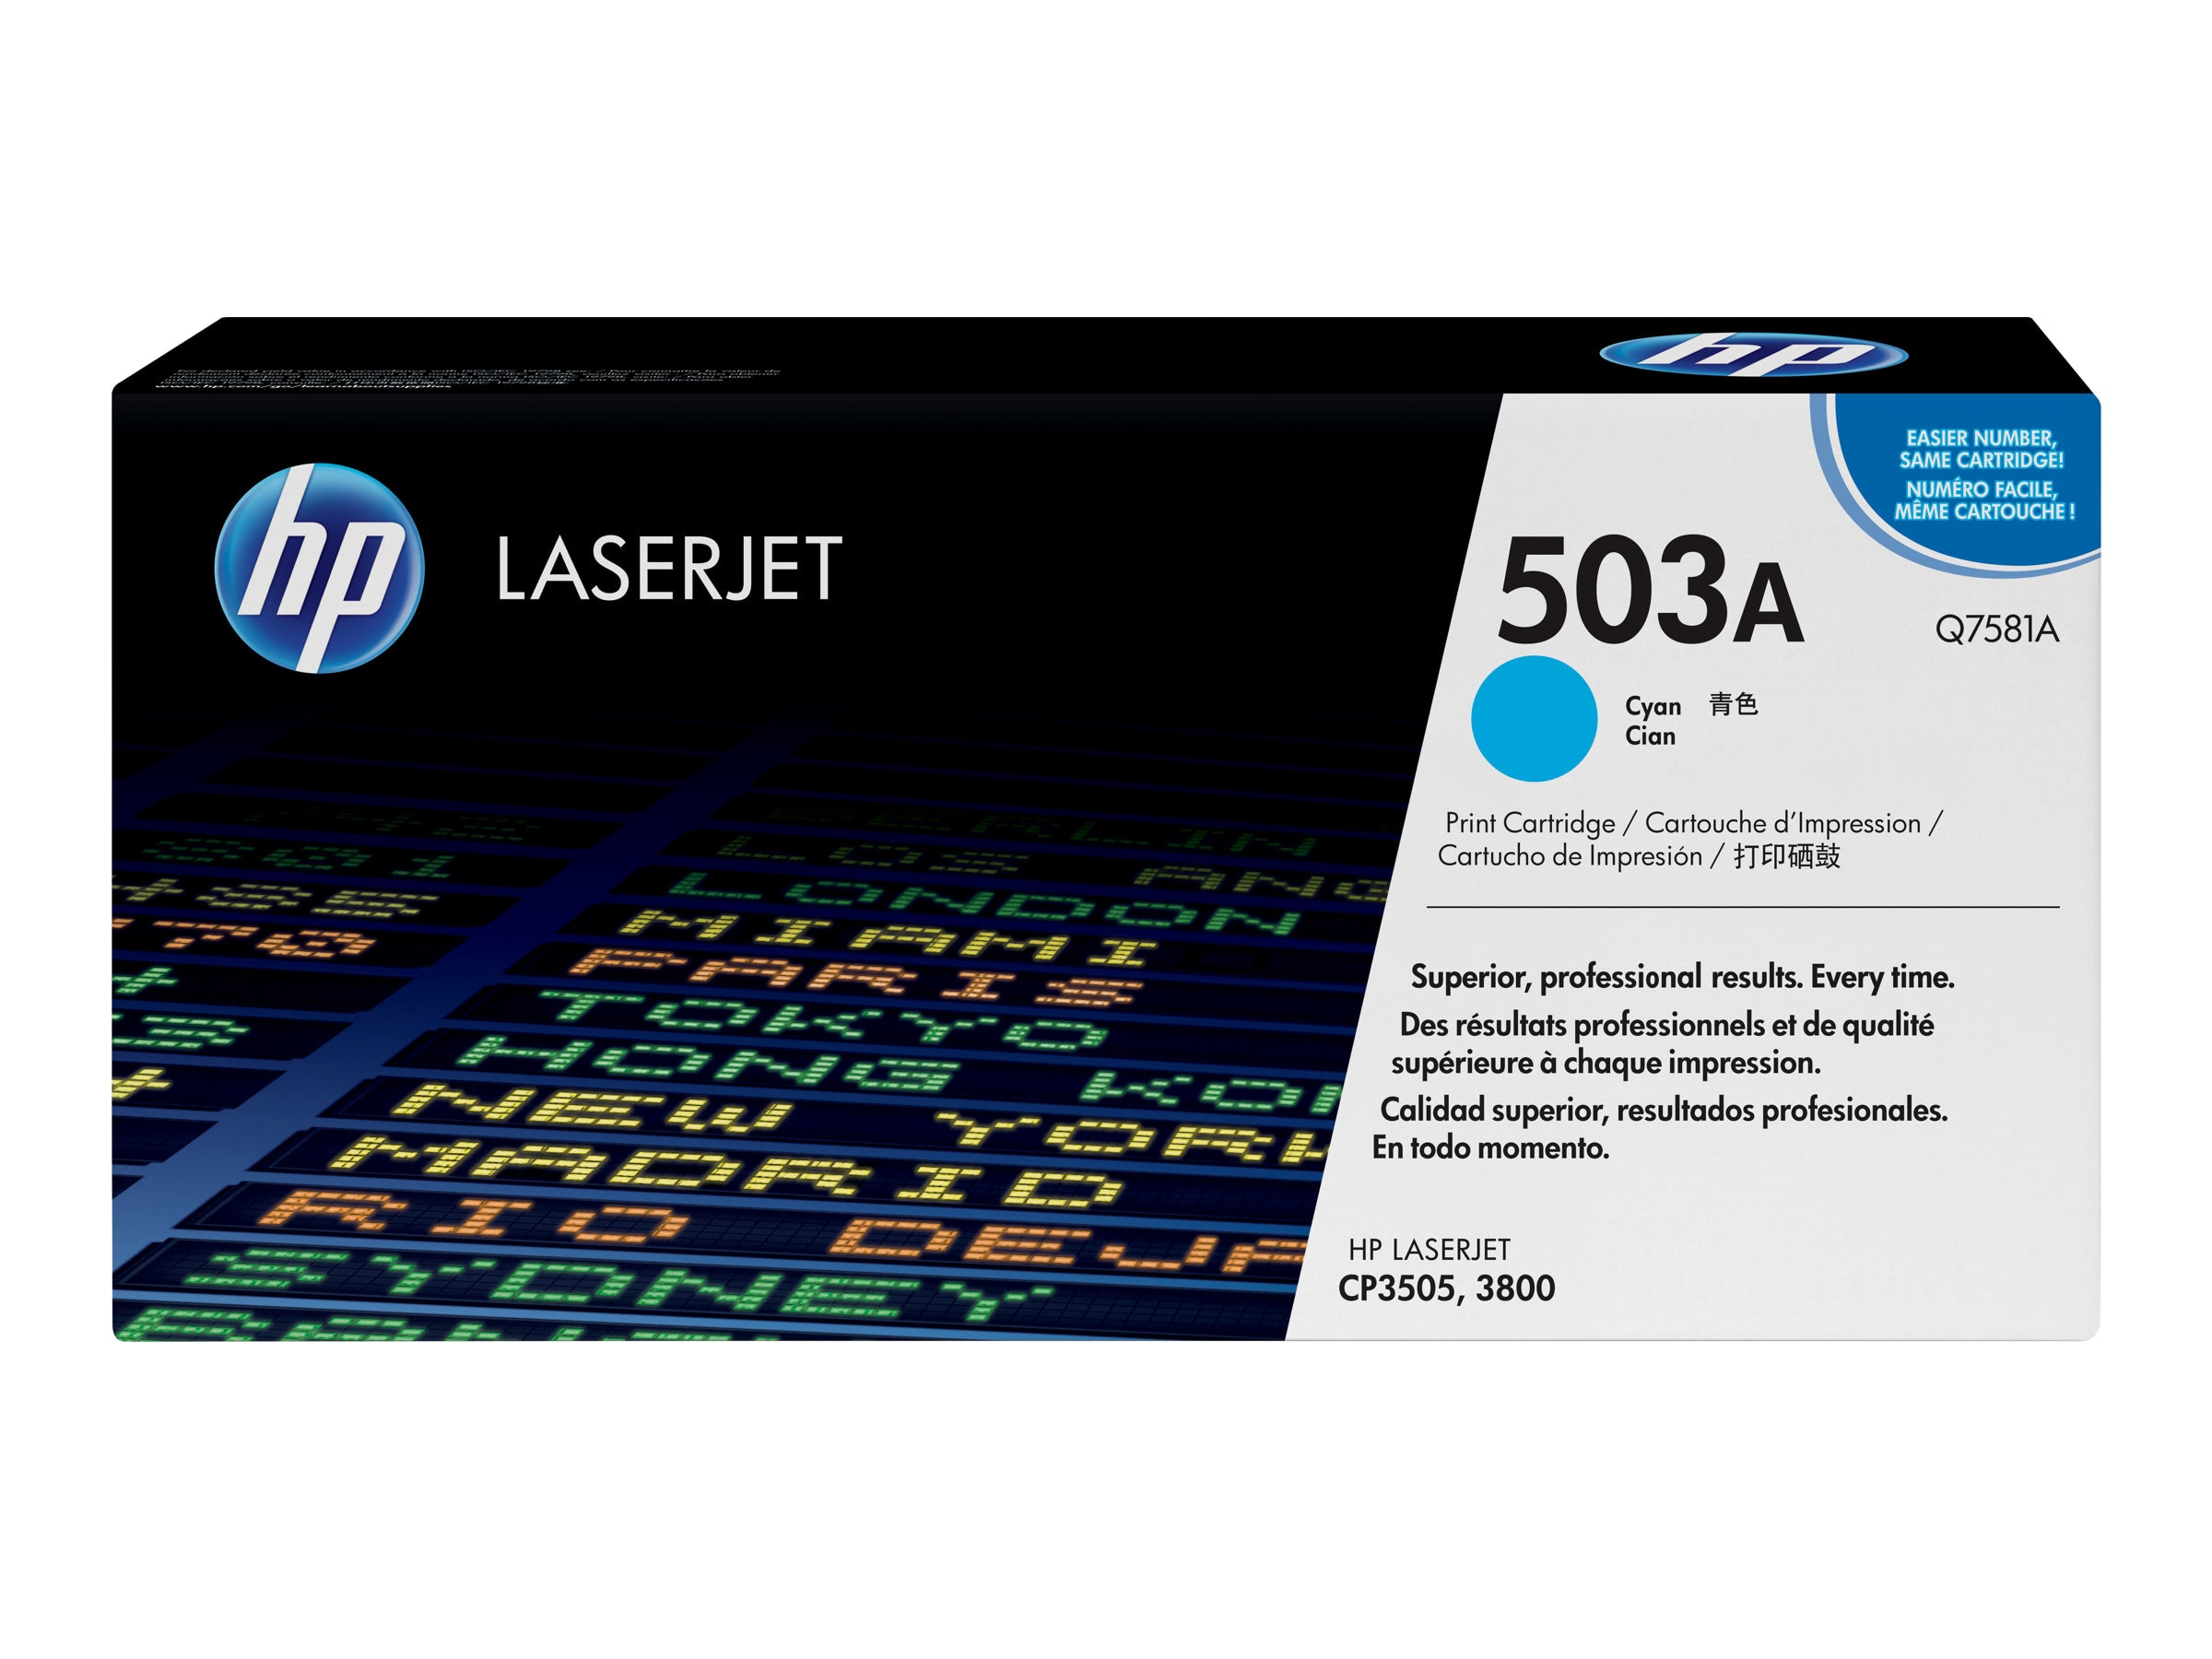 HP 503A (Q7581A) Cyan Original LaserJet Toner Cartridge for HP Color LaserJet 3800 Series Printers